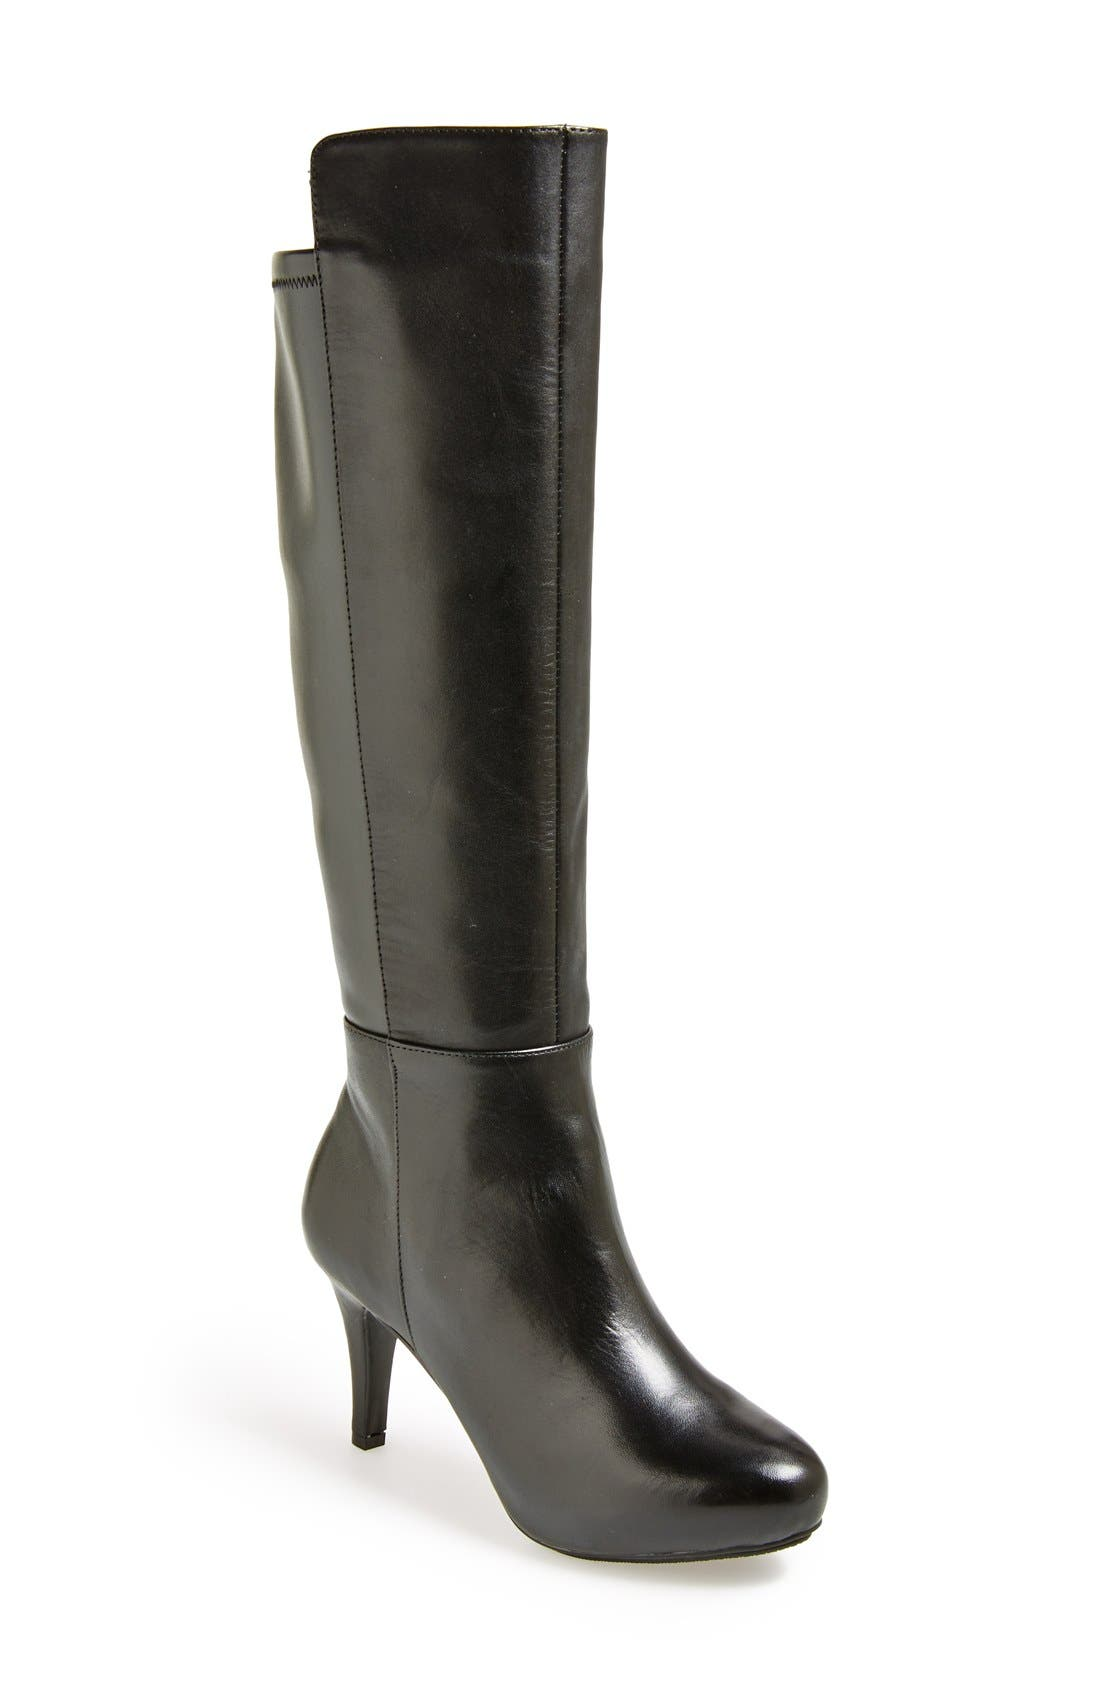 Alternate Image 1 Selected - Me Too 'Mirage' Knee High Leather Boot (Women)